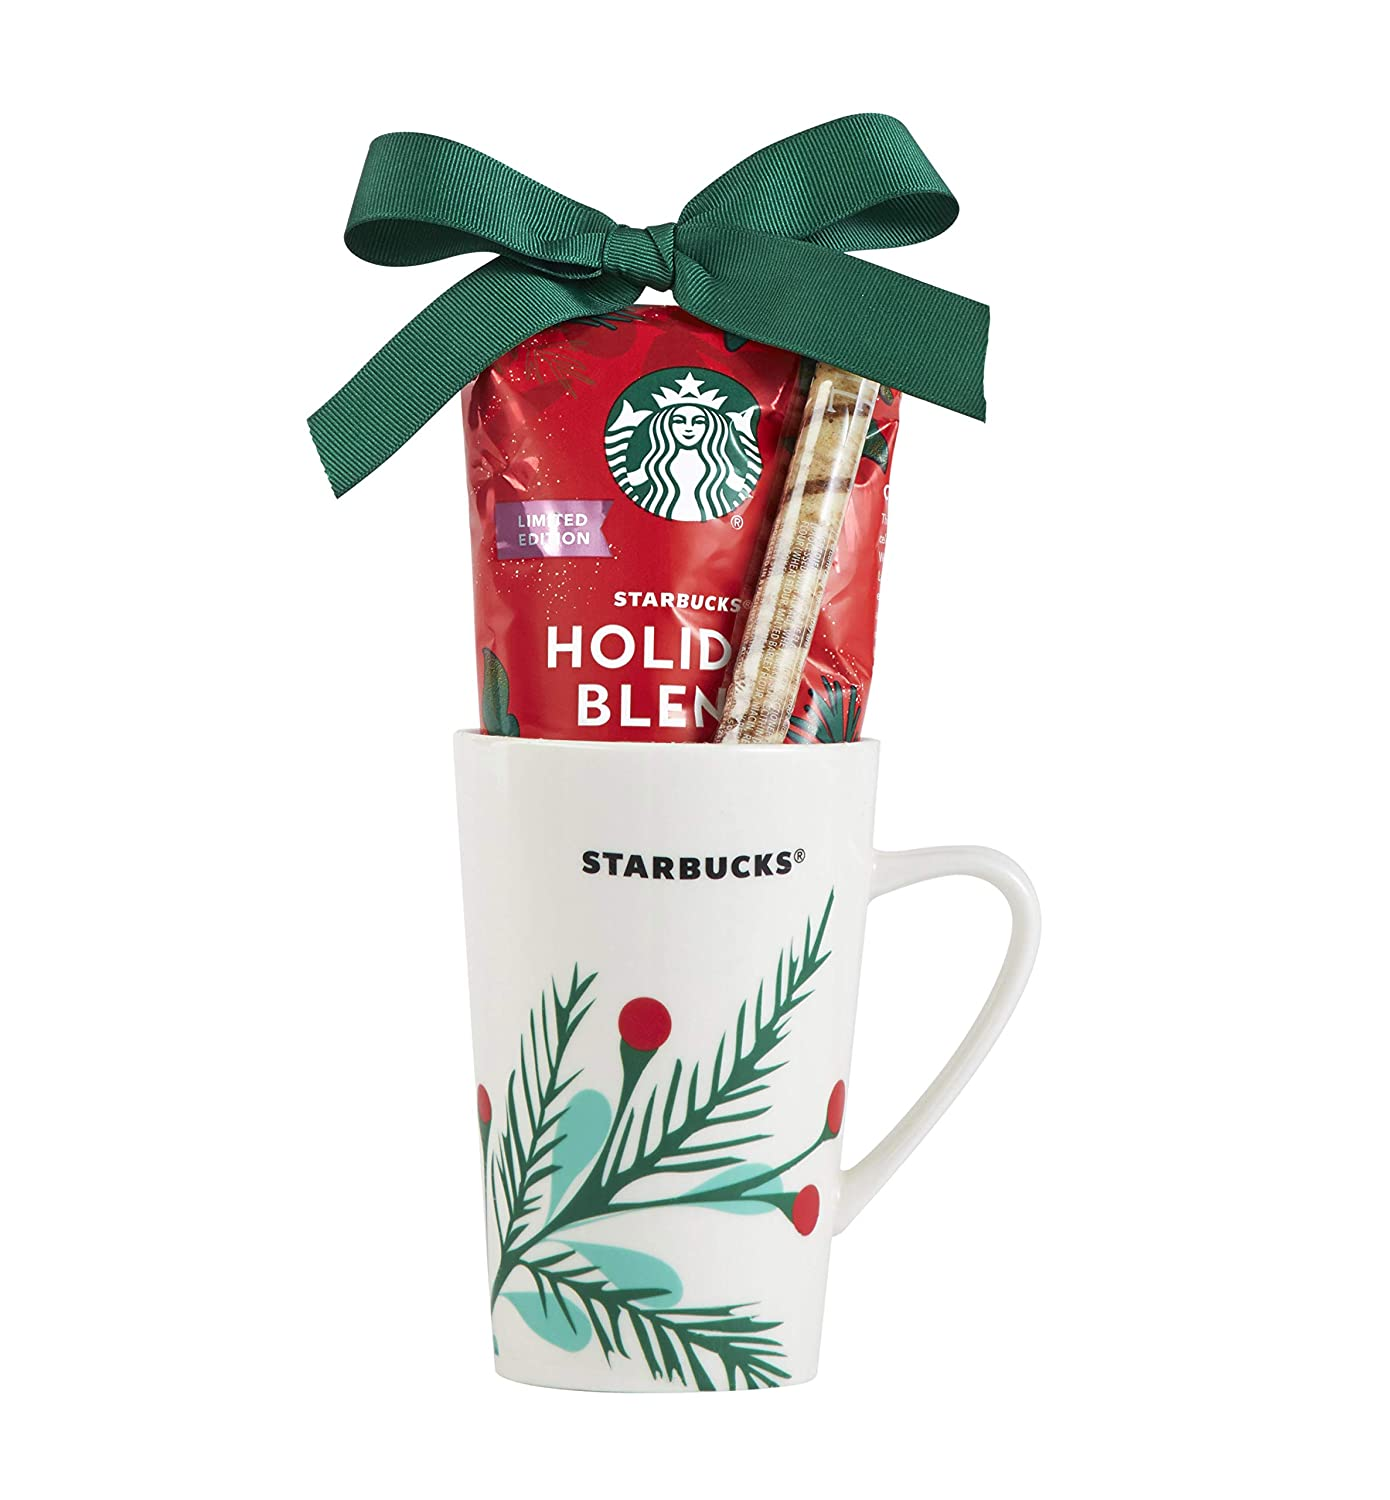 Starbucks Be Merry Holiday Coffee Gift Set, Includes Ceramic Mug and Holiday Blend Ground Coffee